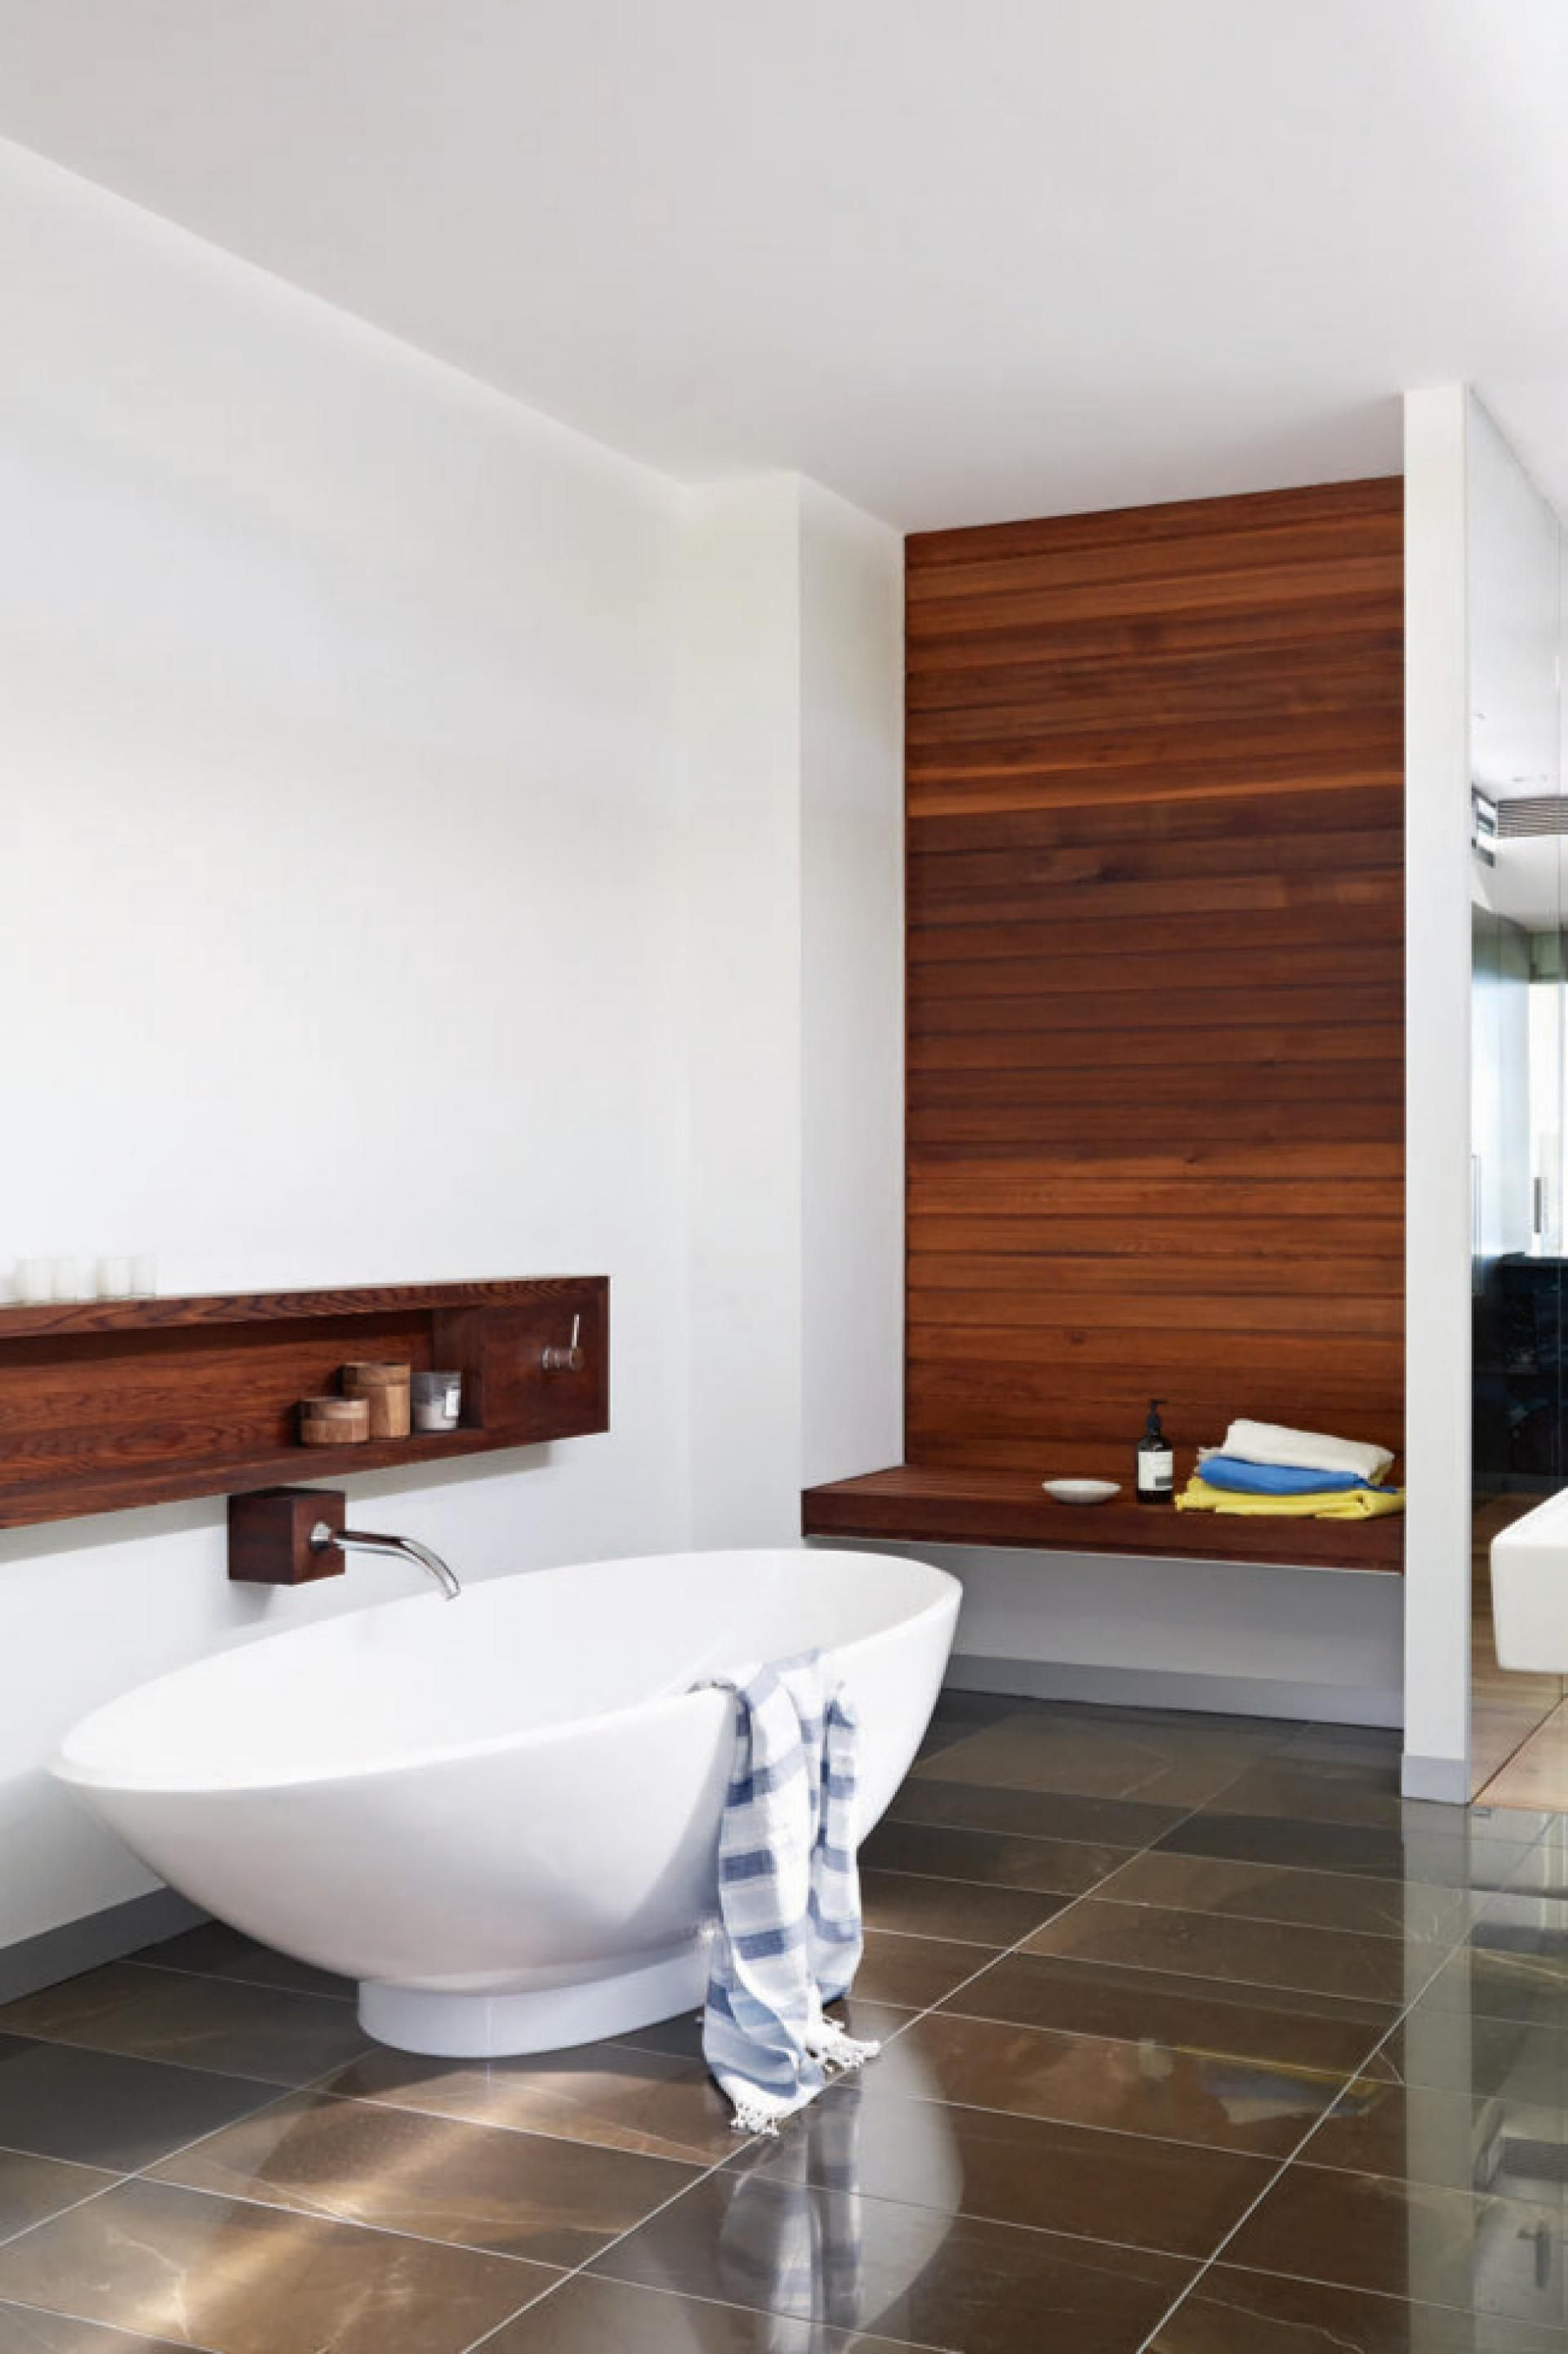 myidealhome: gorgeous bathroom design (via ph. Lucas Allen, design by Arent  & Pike, via Design Milk)